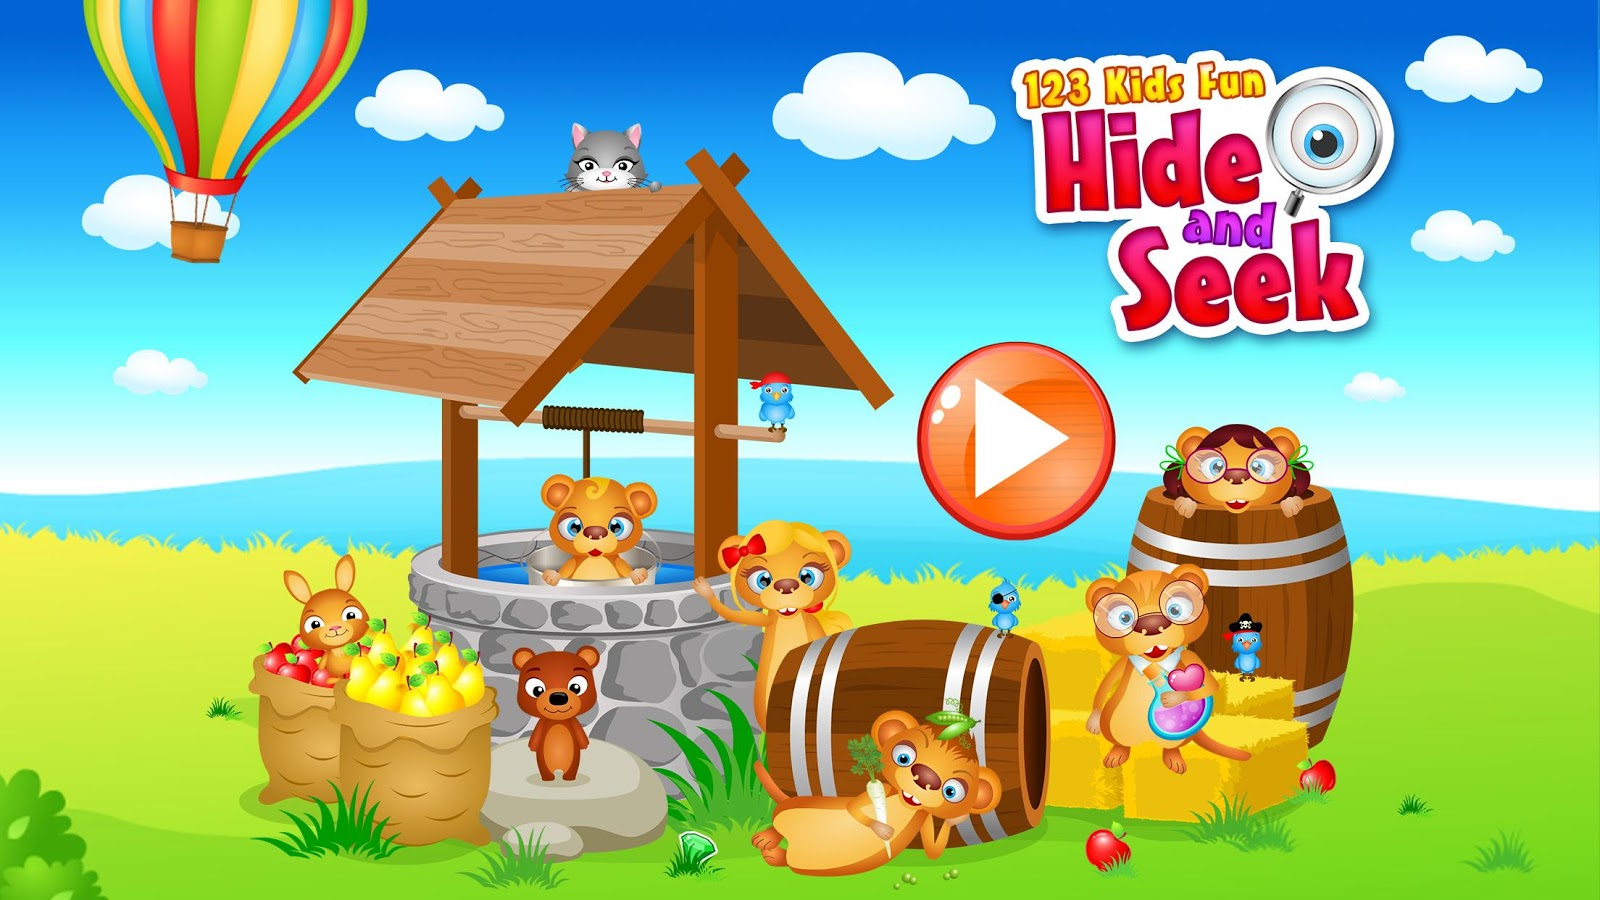 123 Kids Fun Hide and Seek Full- screenshot